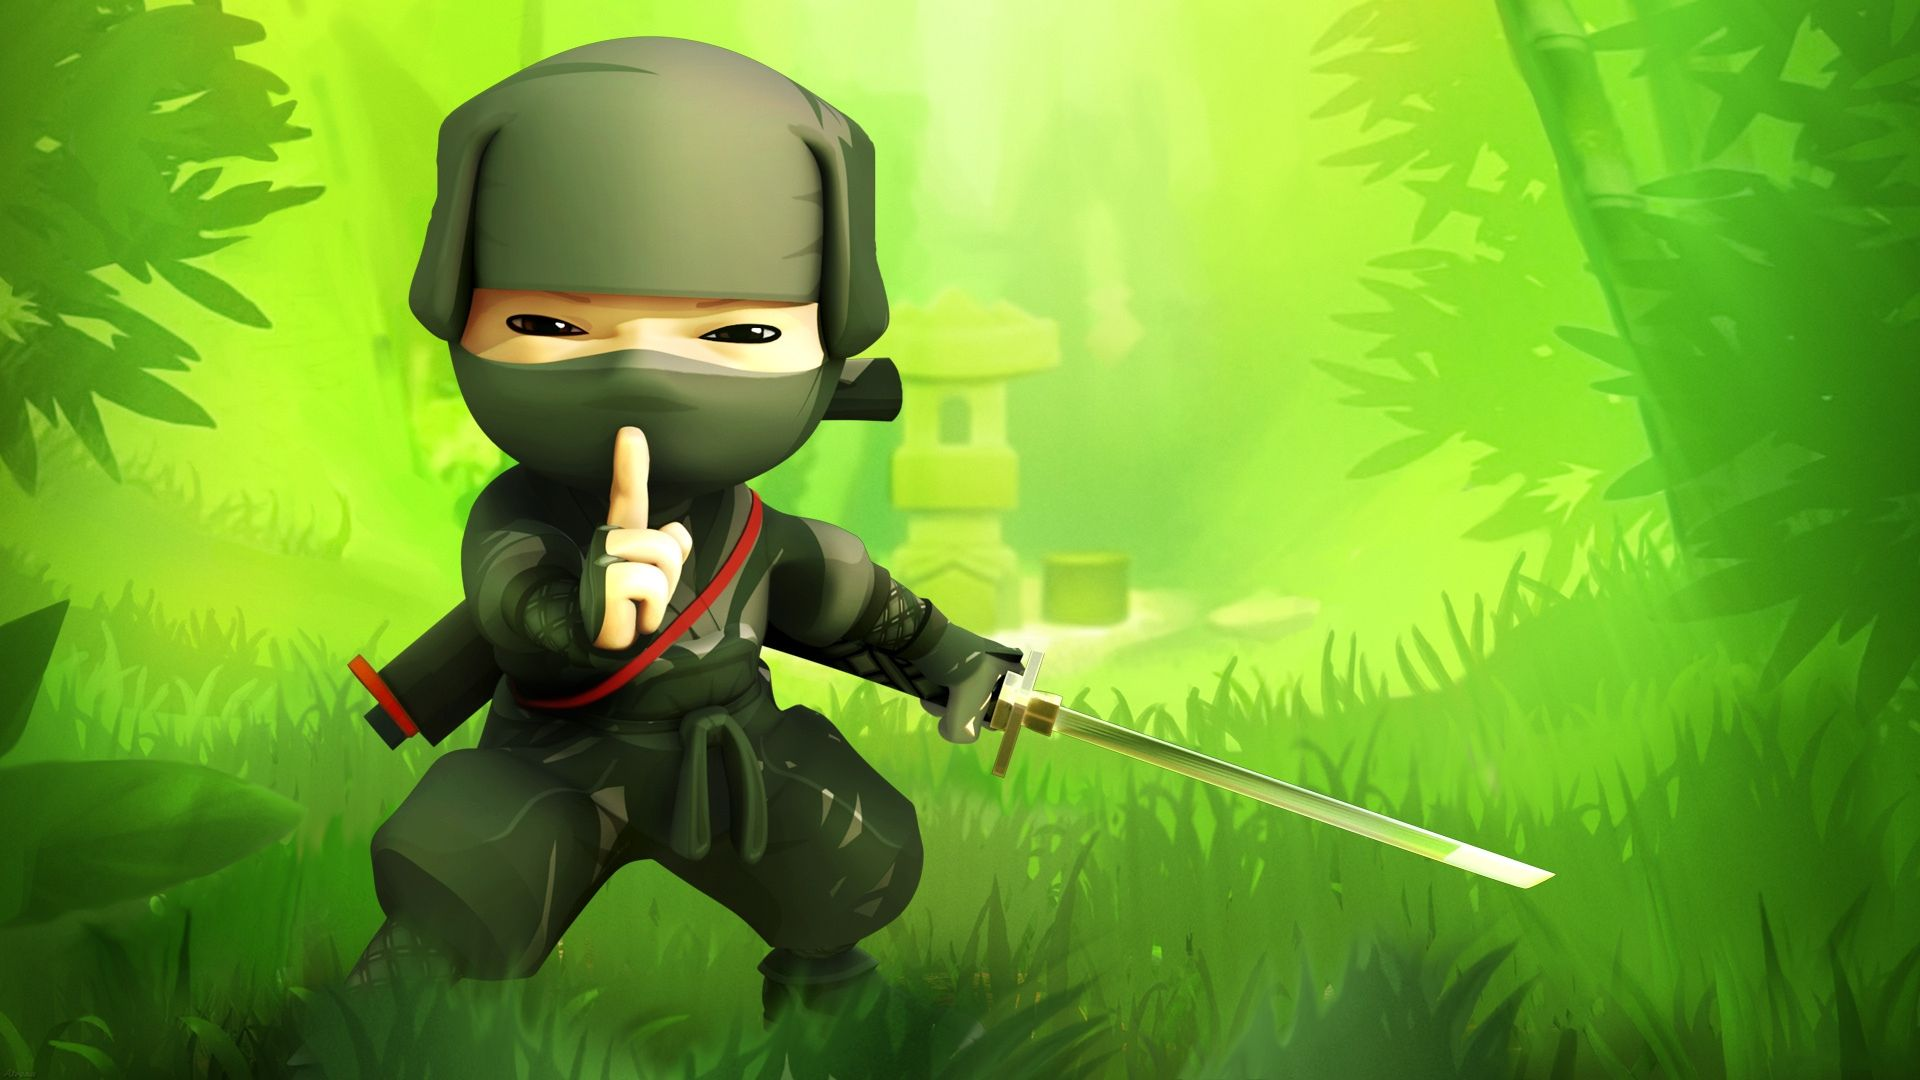 Hd wallpaper cartoon - Cartoon Ninja Hd Wallpapers